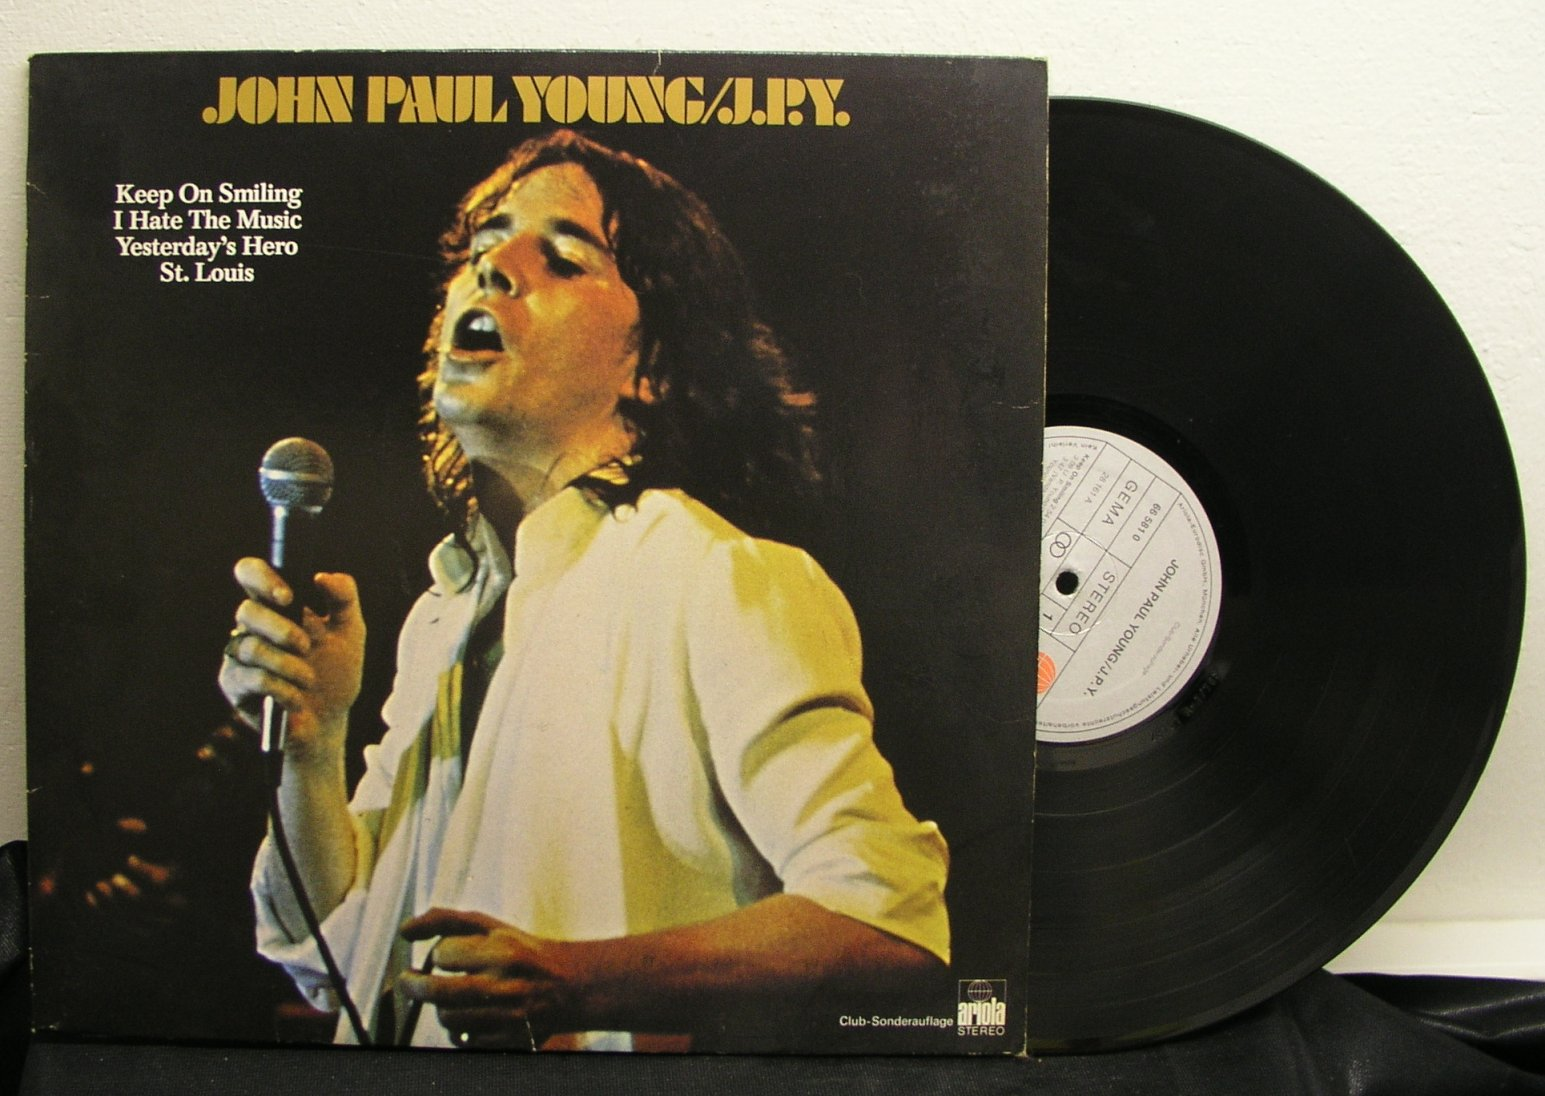 John Paul Young: J.P.Y. (EX/EX)